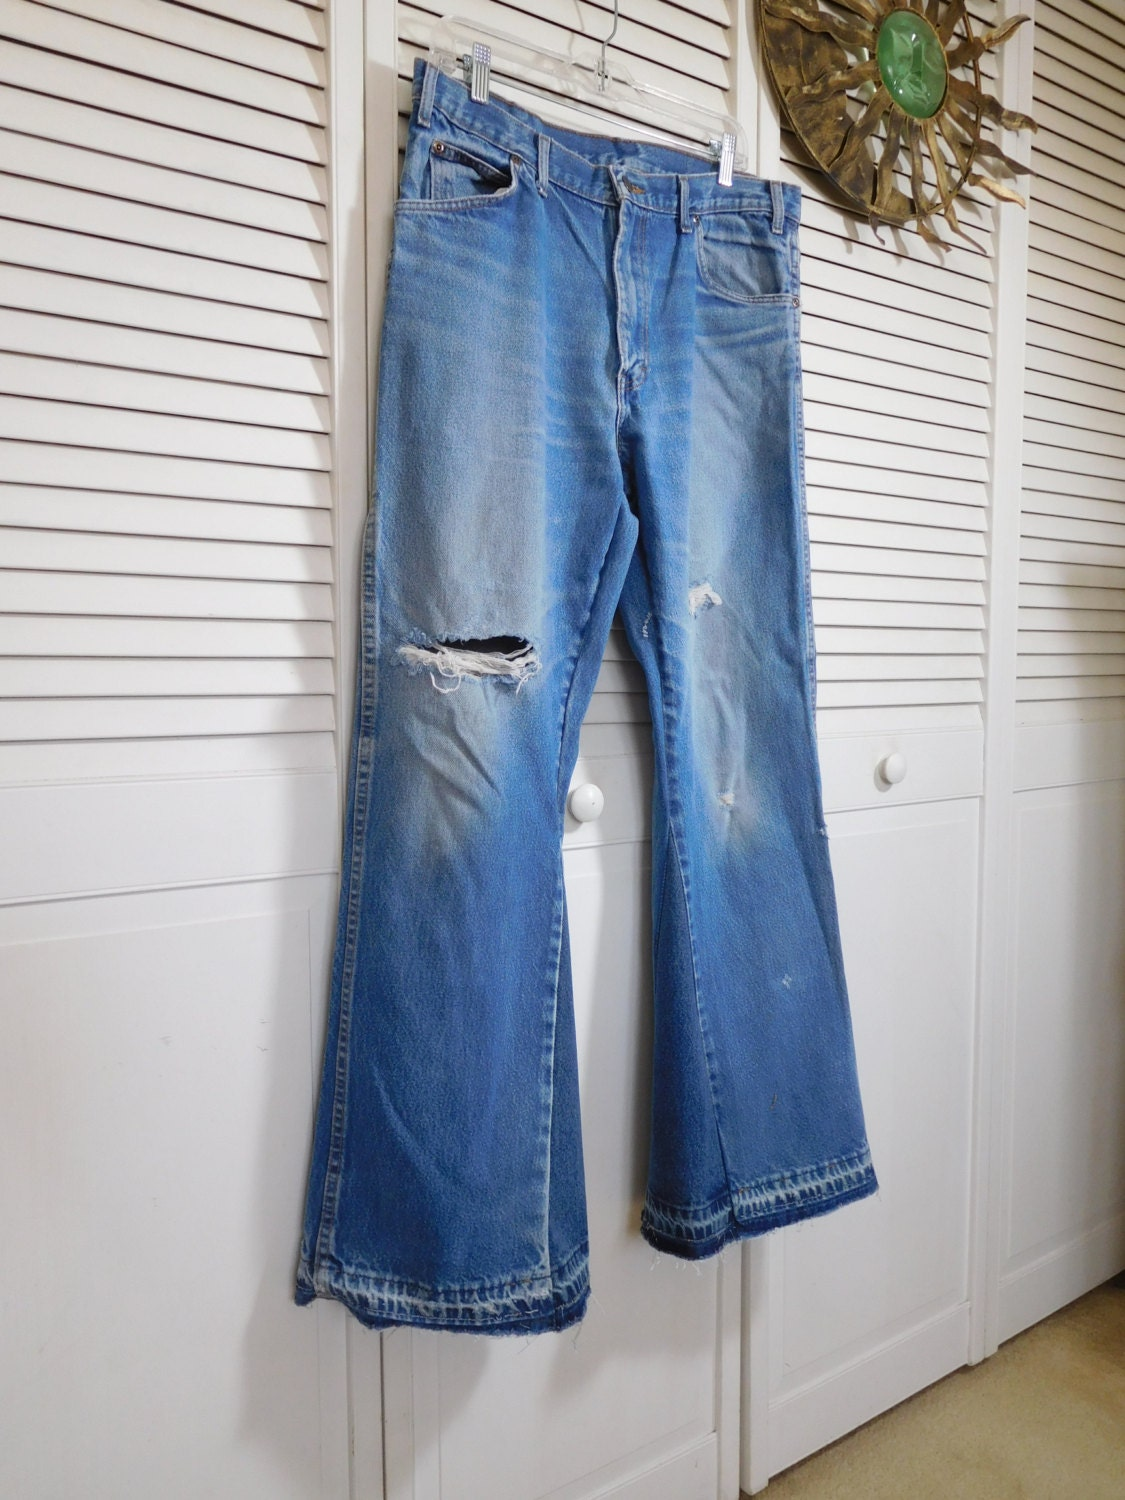 Mens Bell Bottom Jeans Dickies Pants Upcycled Clothes Baggy Leg High Waisted 36 x 33 Distressed Southwest Grunge Hippy Bellbottoms Boho S3A4cRfo